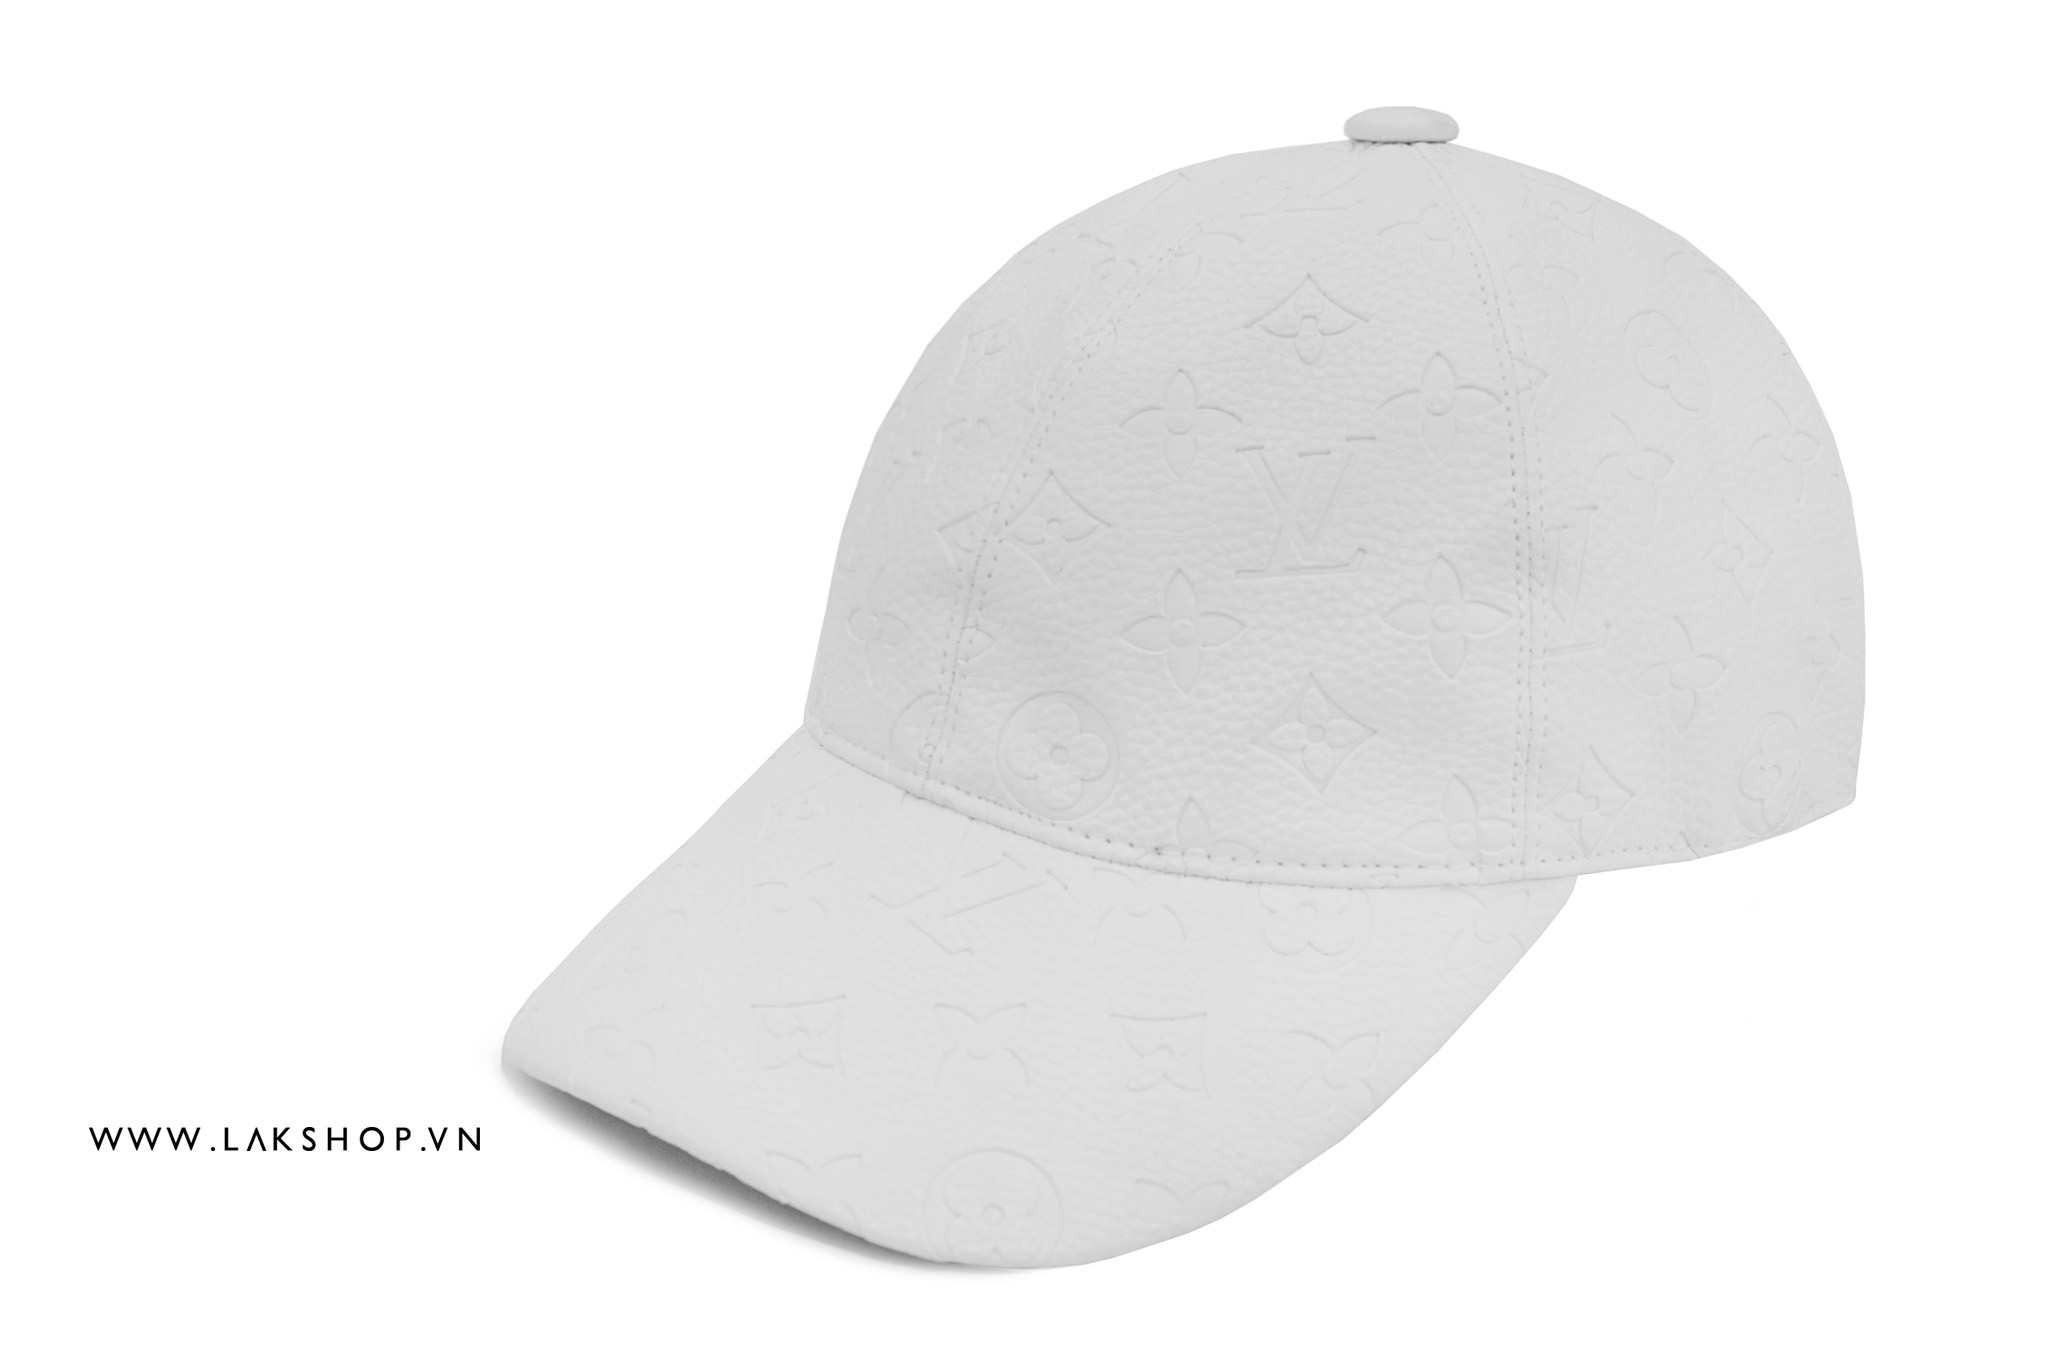 Louis Vuitton Monogram White Leather Baseball Cap